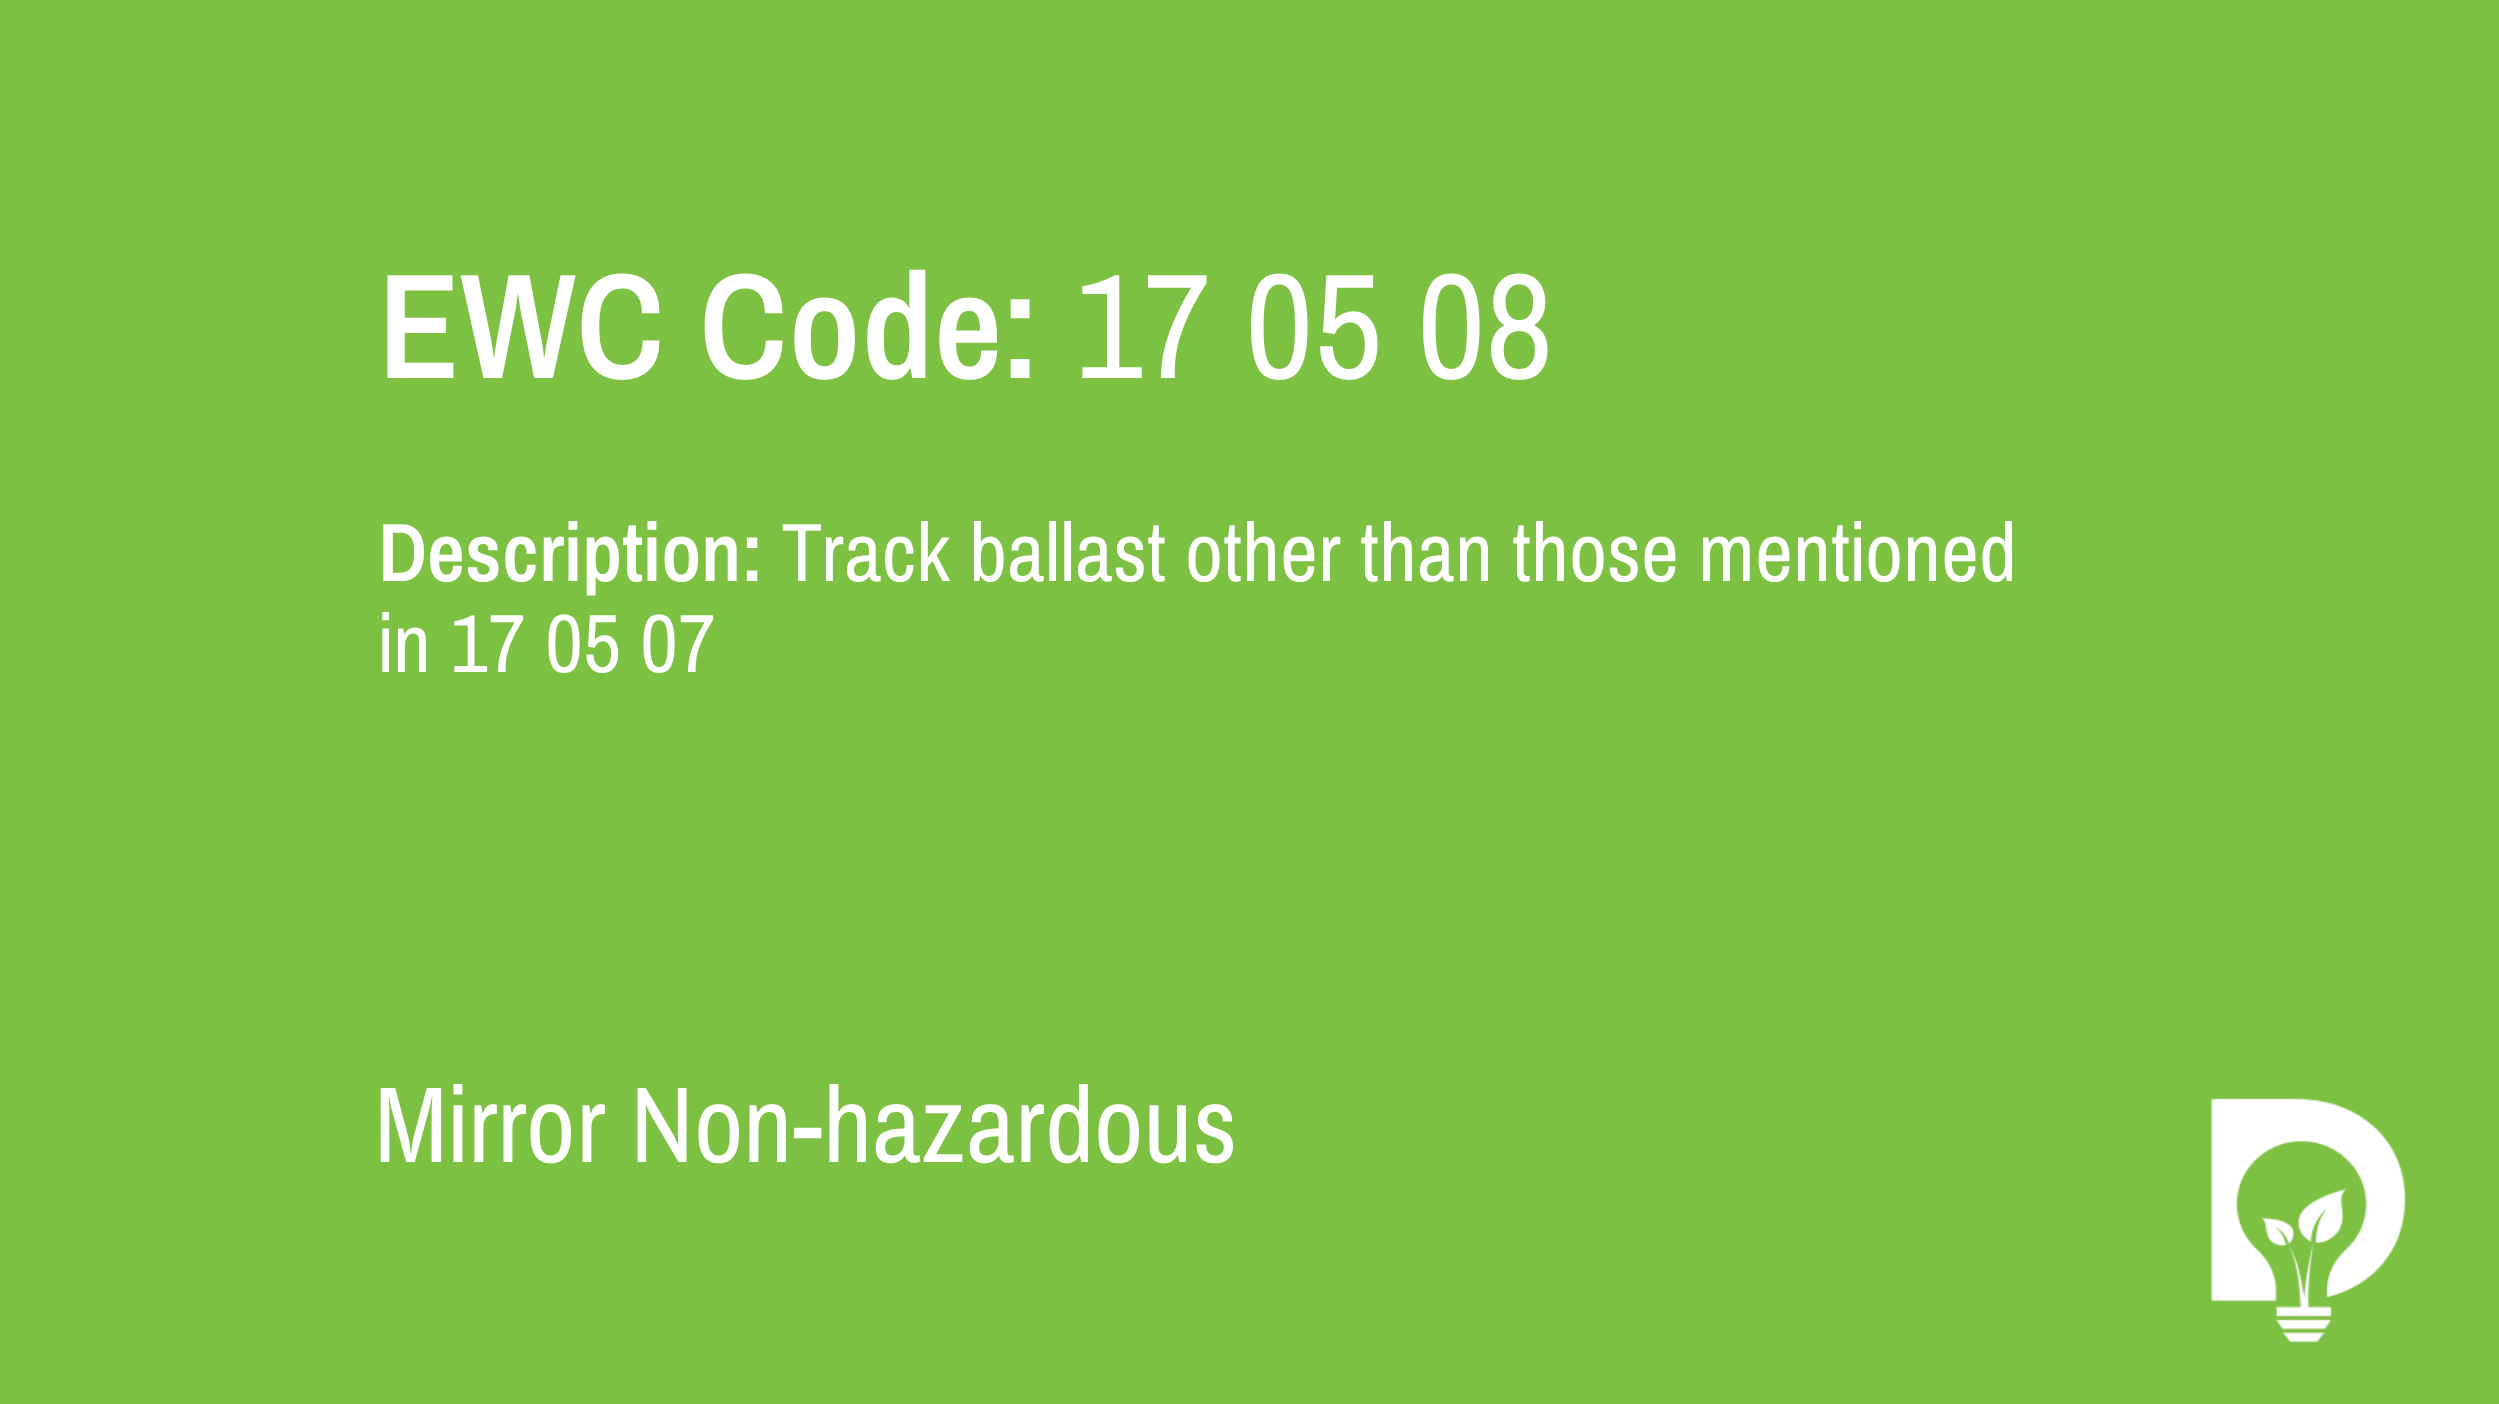 EWC Code: 17 05 08 - track ballast other than those mentioned in 17 05 07. Type: Mirror Non-hazardous. Image by Dsposal